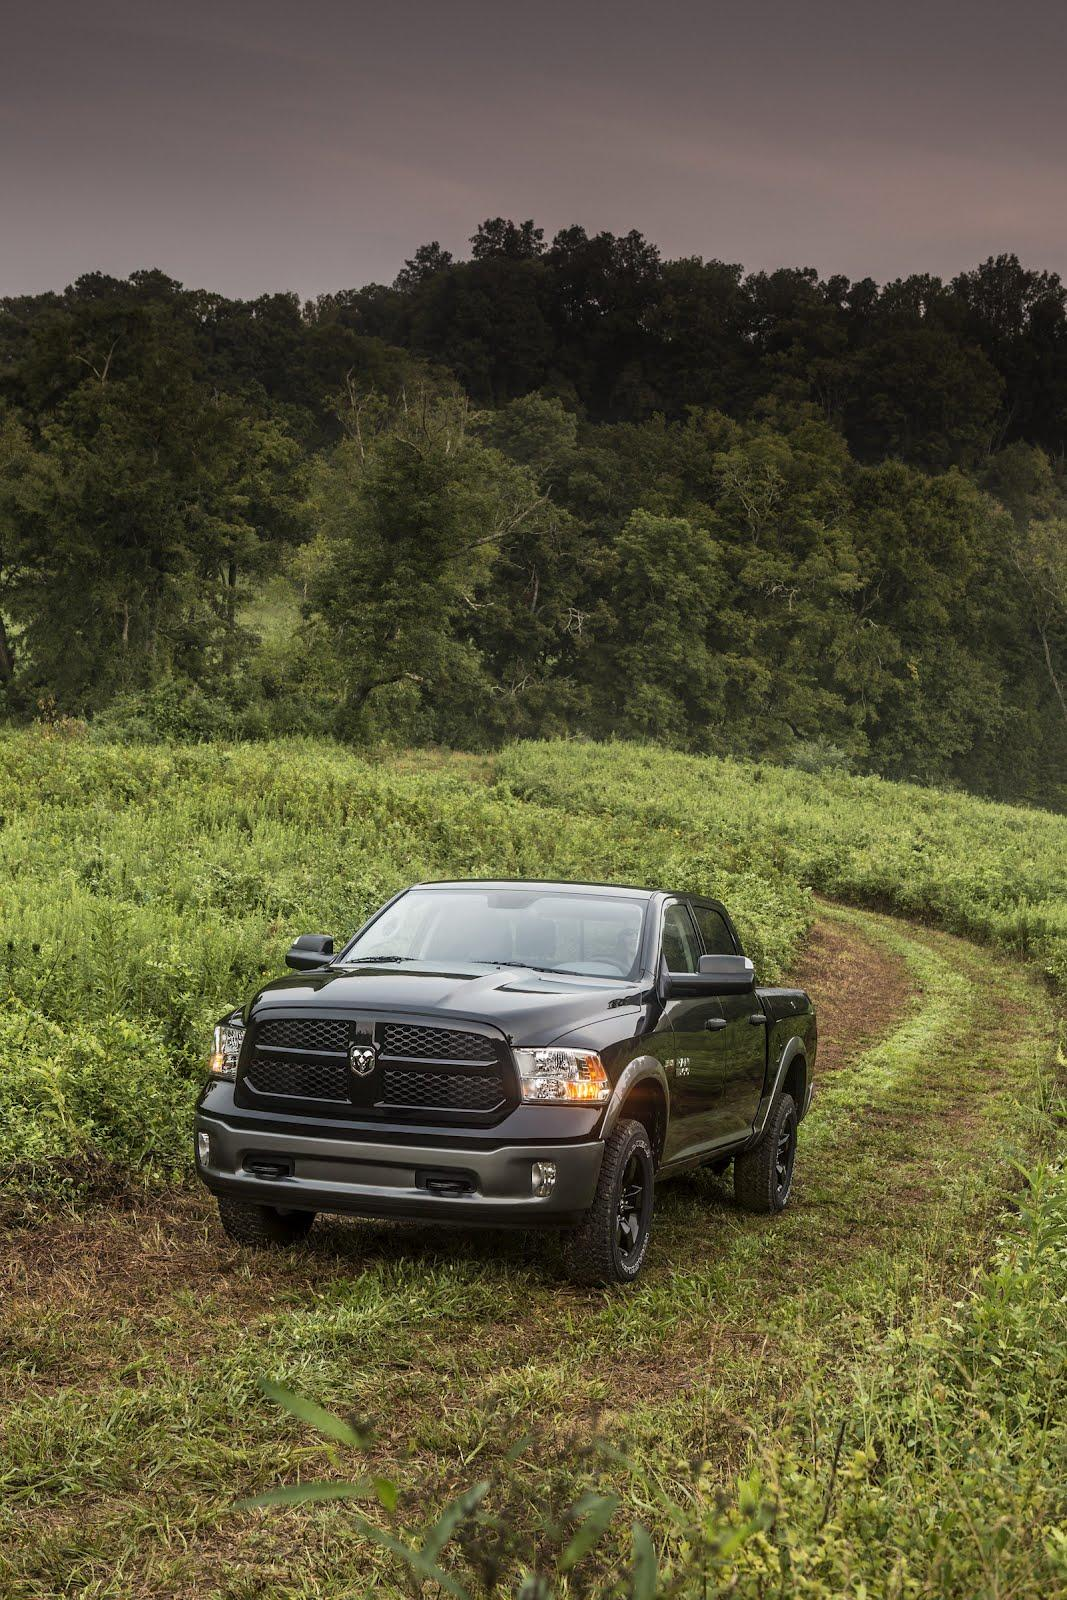 Dodge Ram 1500 Outdoorsman 2013 photo 83356 pictures at high resolution